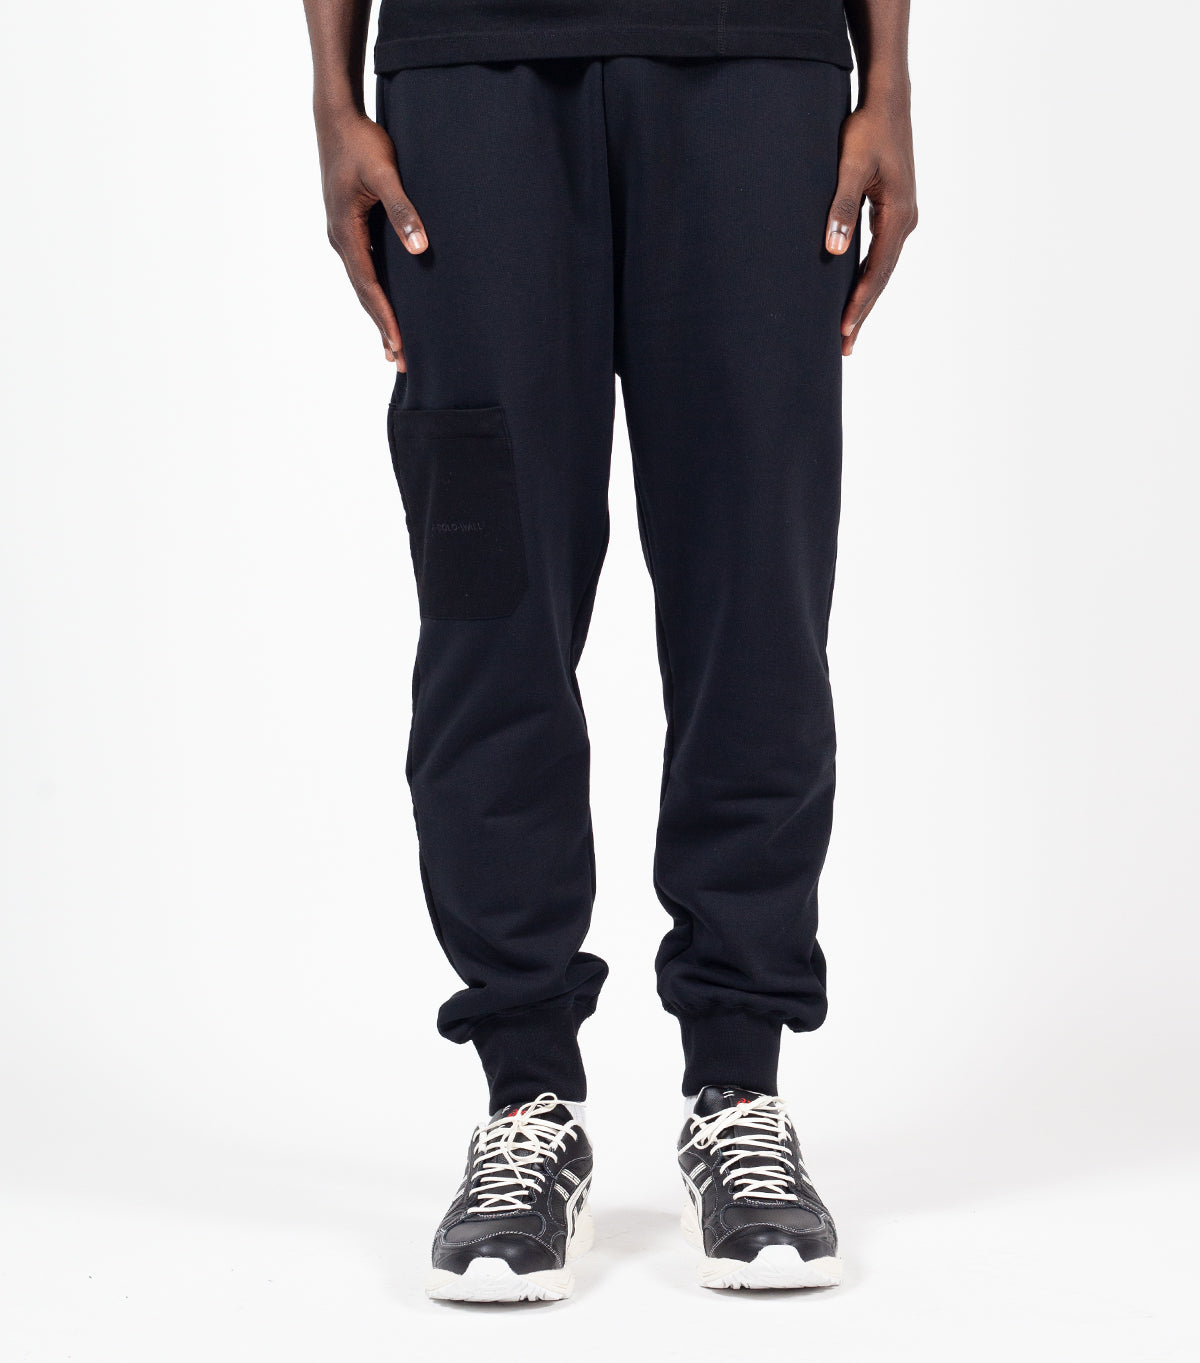 A-COLD-WALL* Logo Embroidery Sweat Pant Black